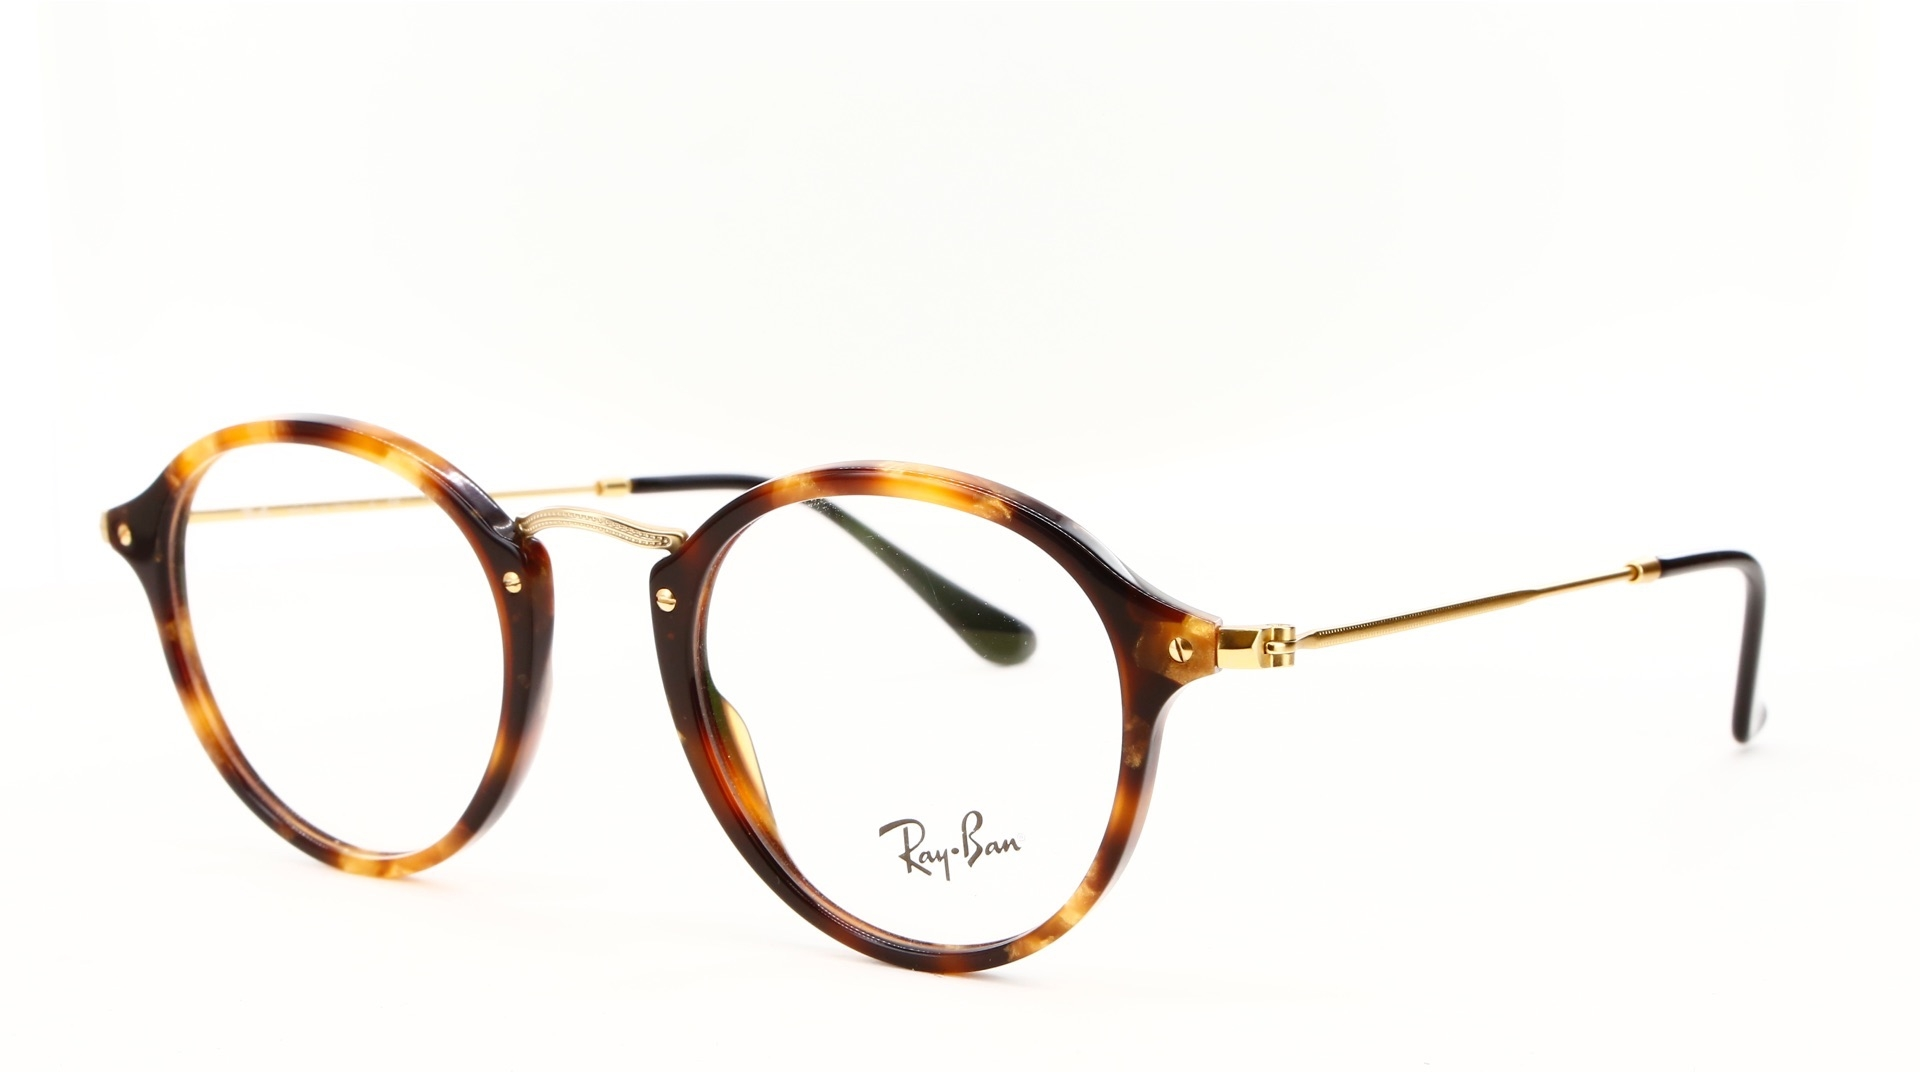 Ray-Ban - ref: 73635